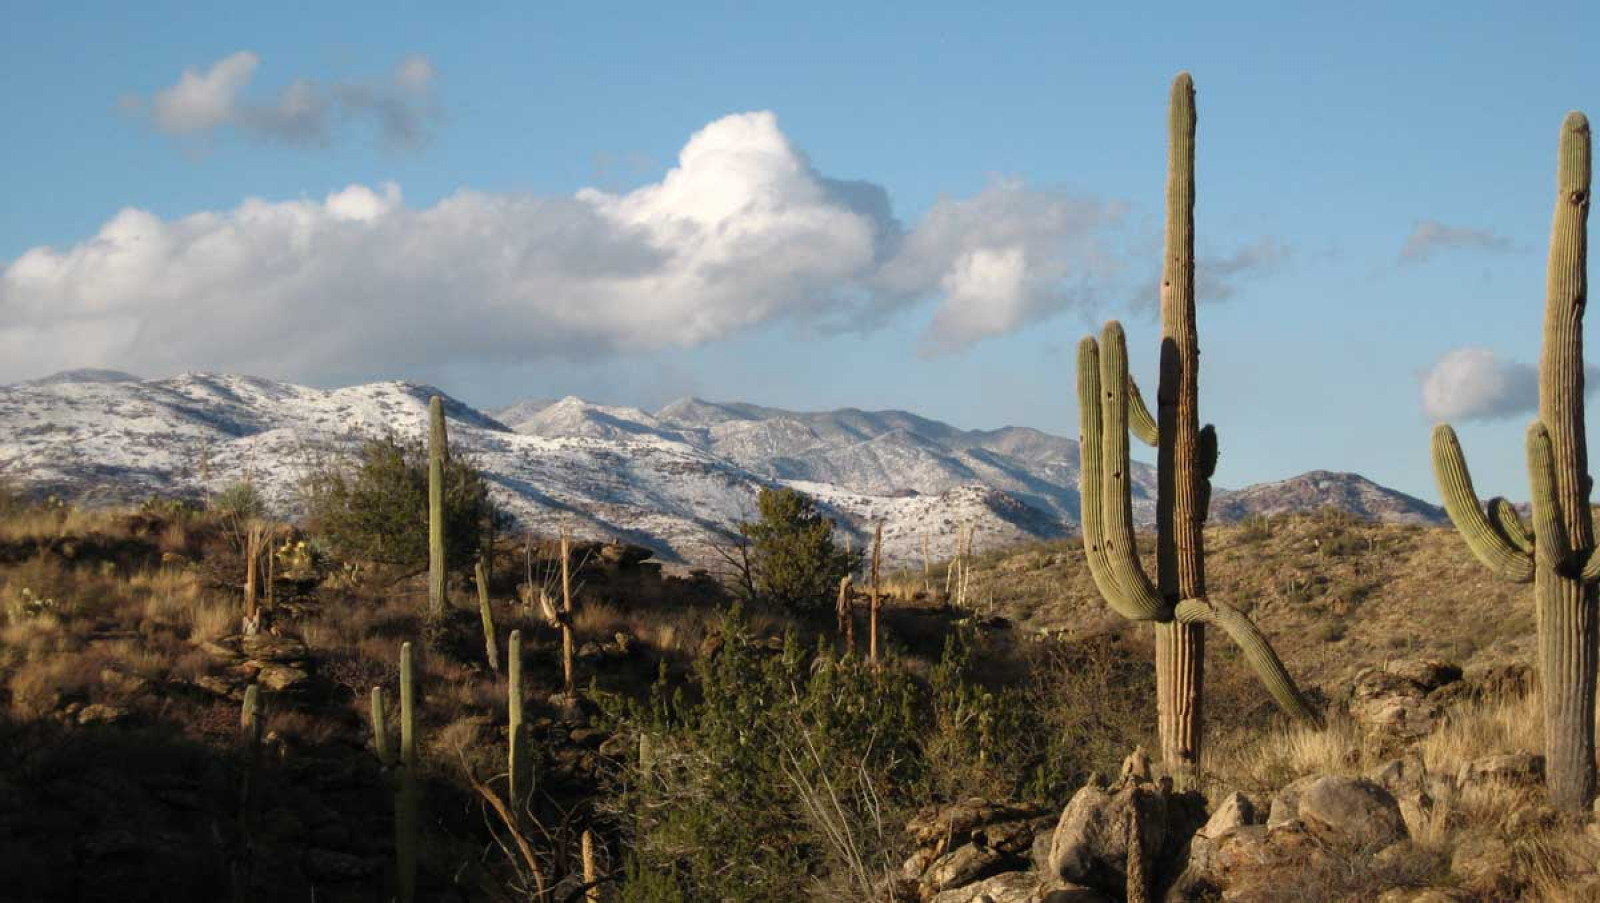 image of snow covered saguaro cactus